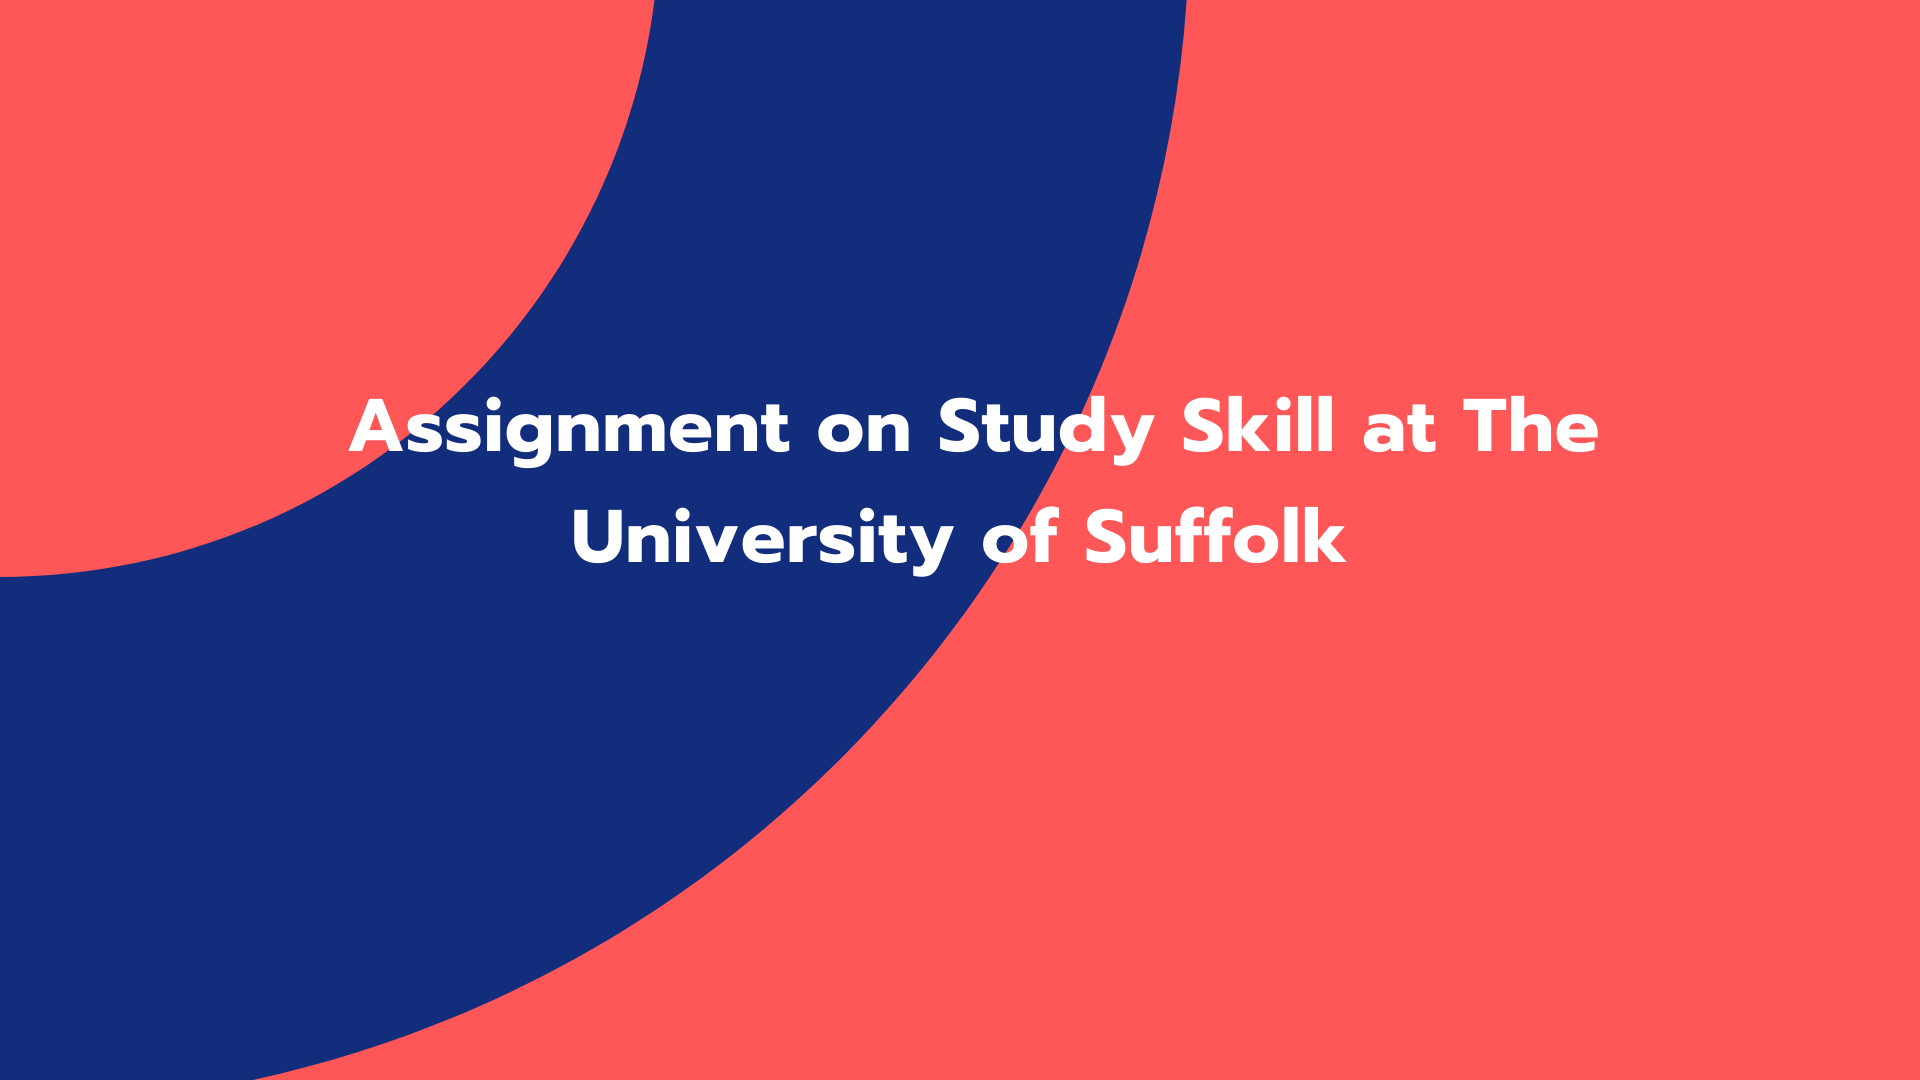 Assignment on Study Skill at The University of Suffolk